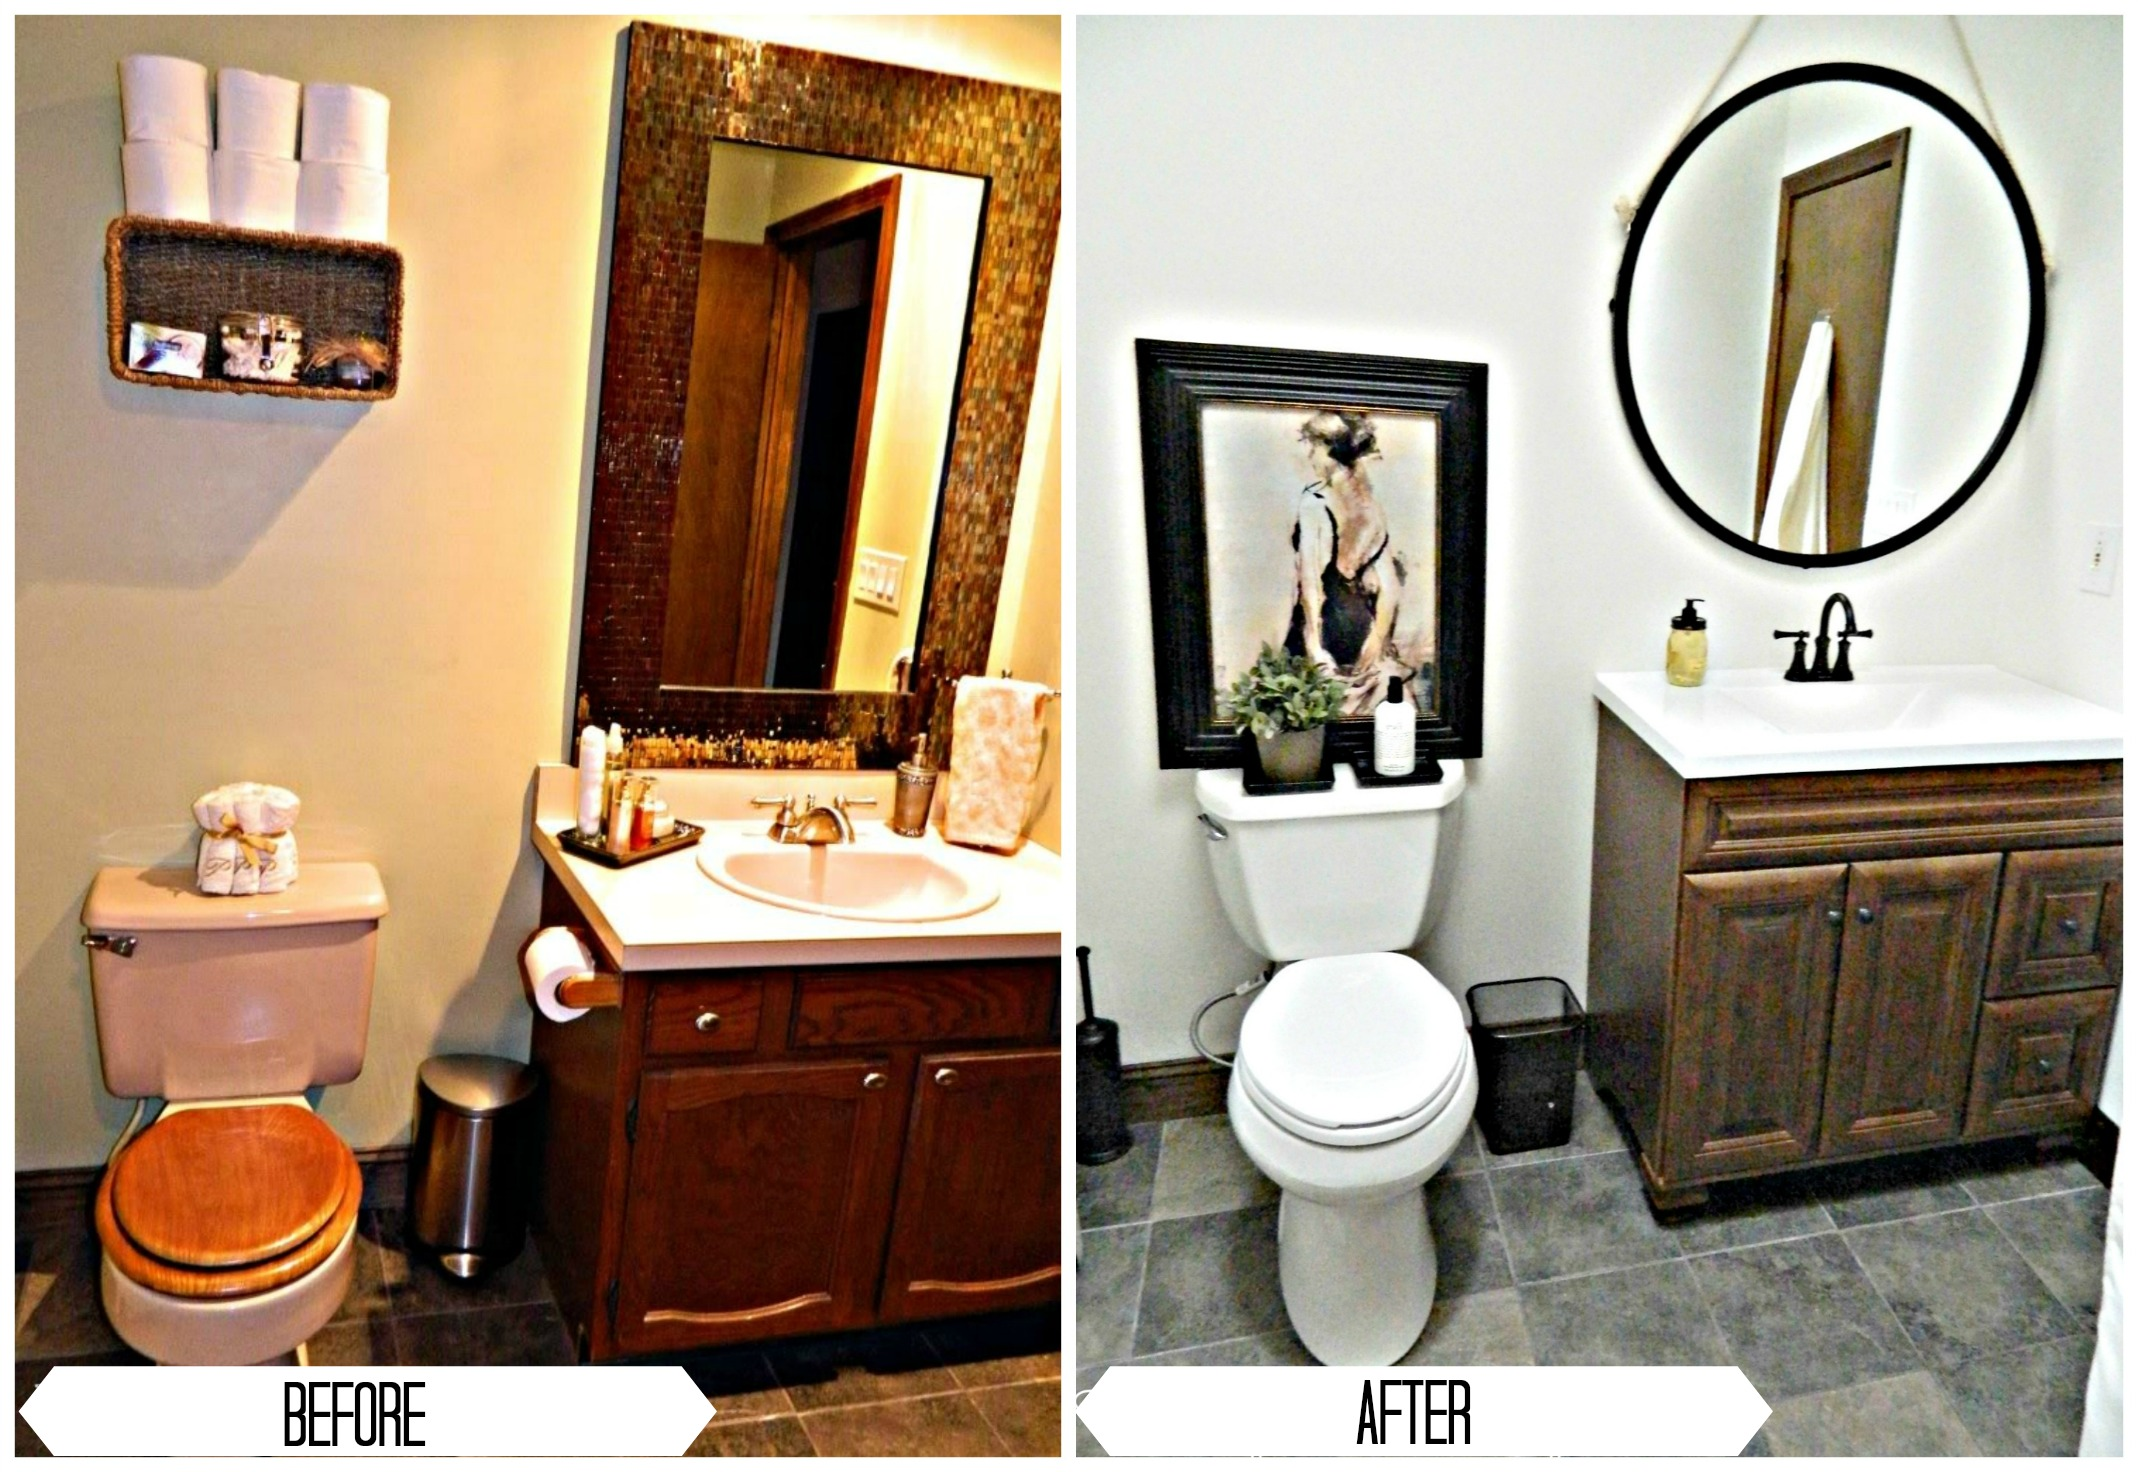 before and after bathroom renovation at